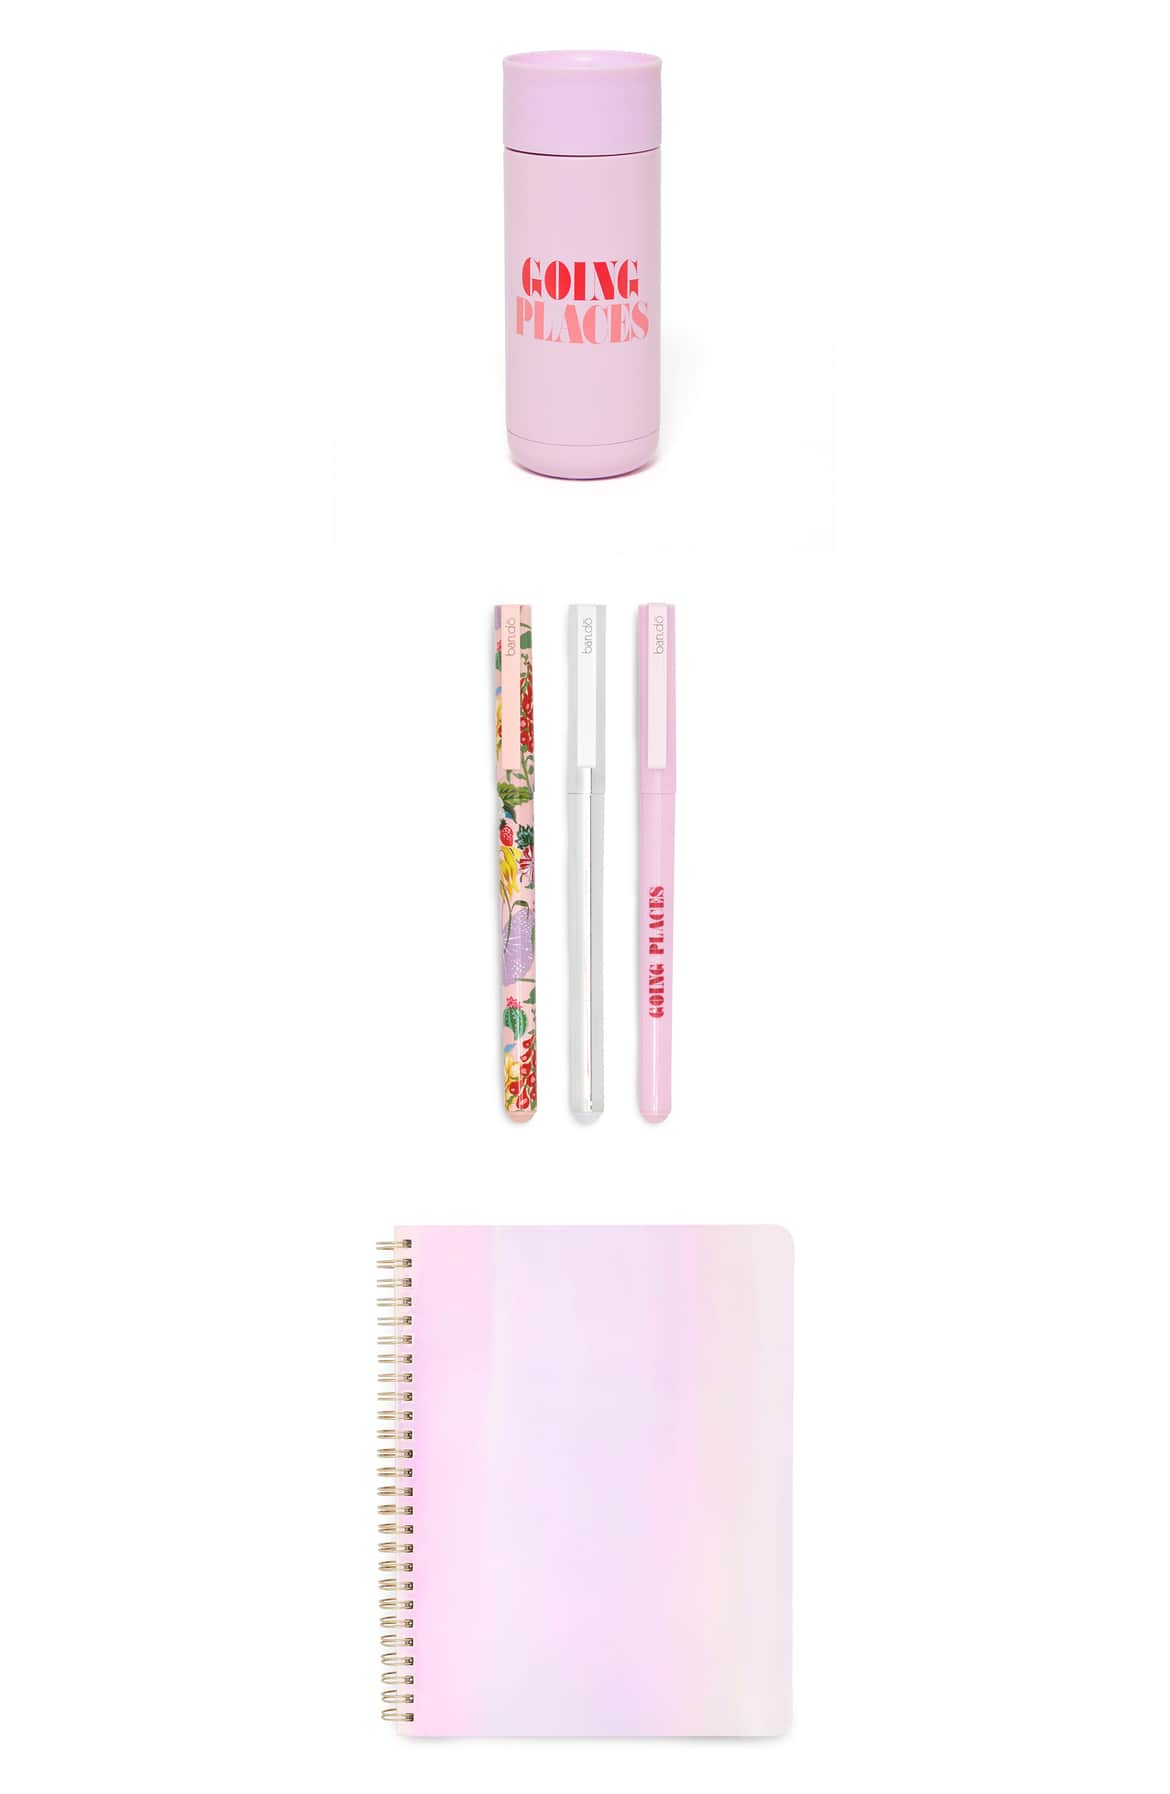 <p>For the constant traveler or creative, this mug, notebook and pen trio set will suit their active life and mind in pretty, whimsical style.{&nbsp;}Price $54.00. (Image: Nordstrom){&nbsp;}</p><p></p>